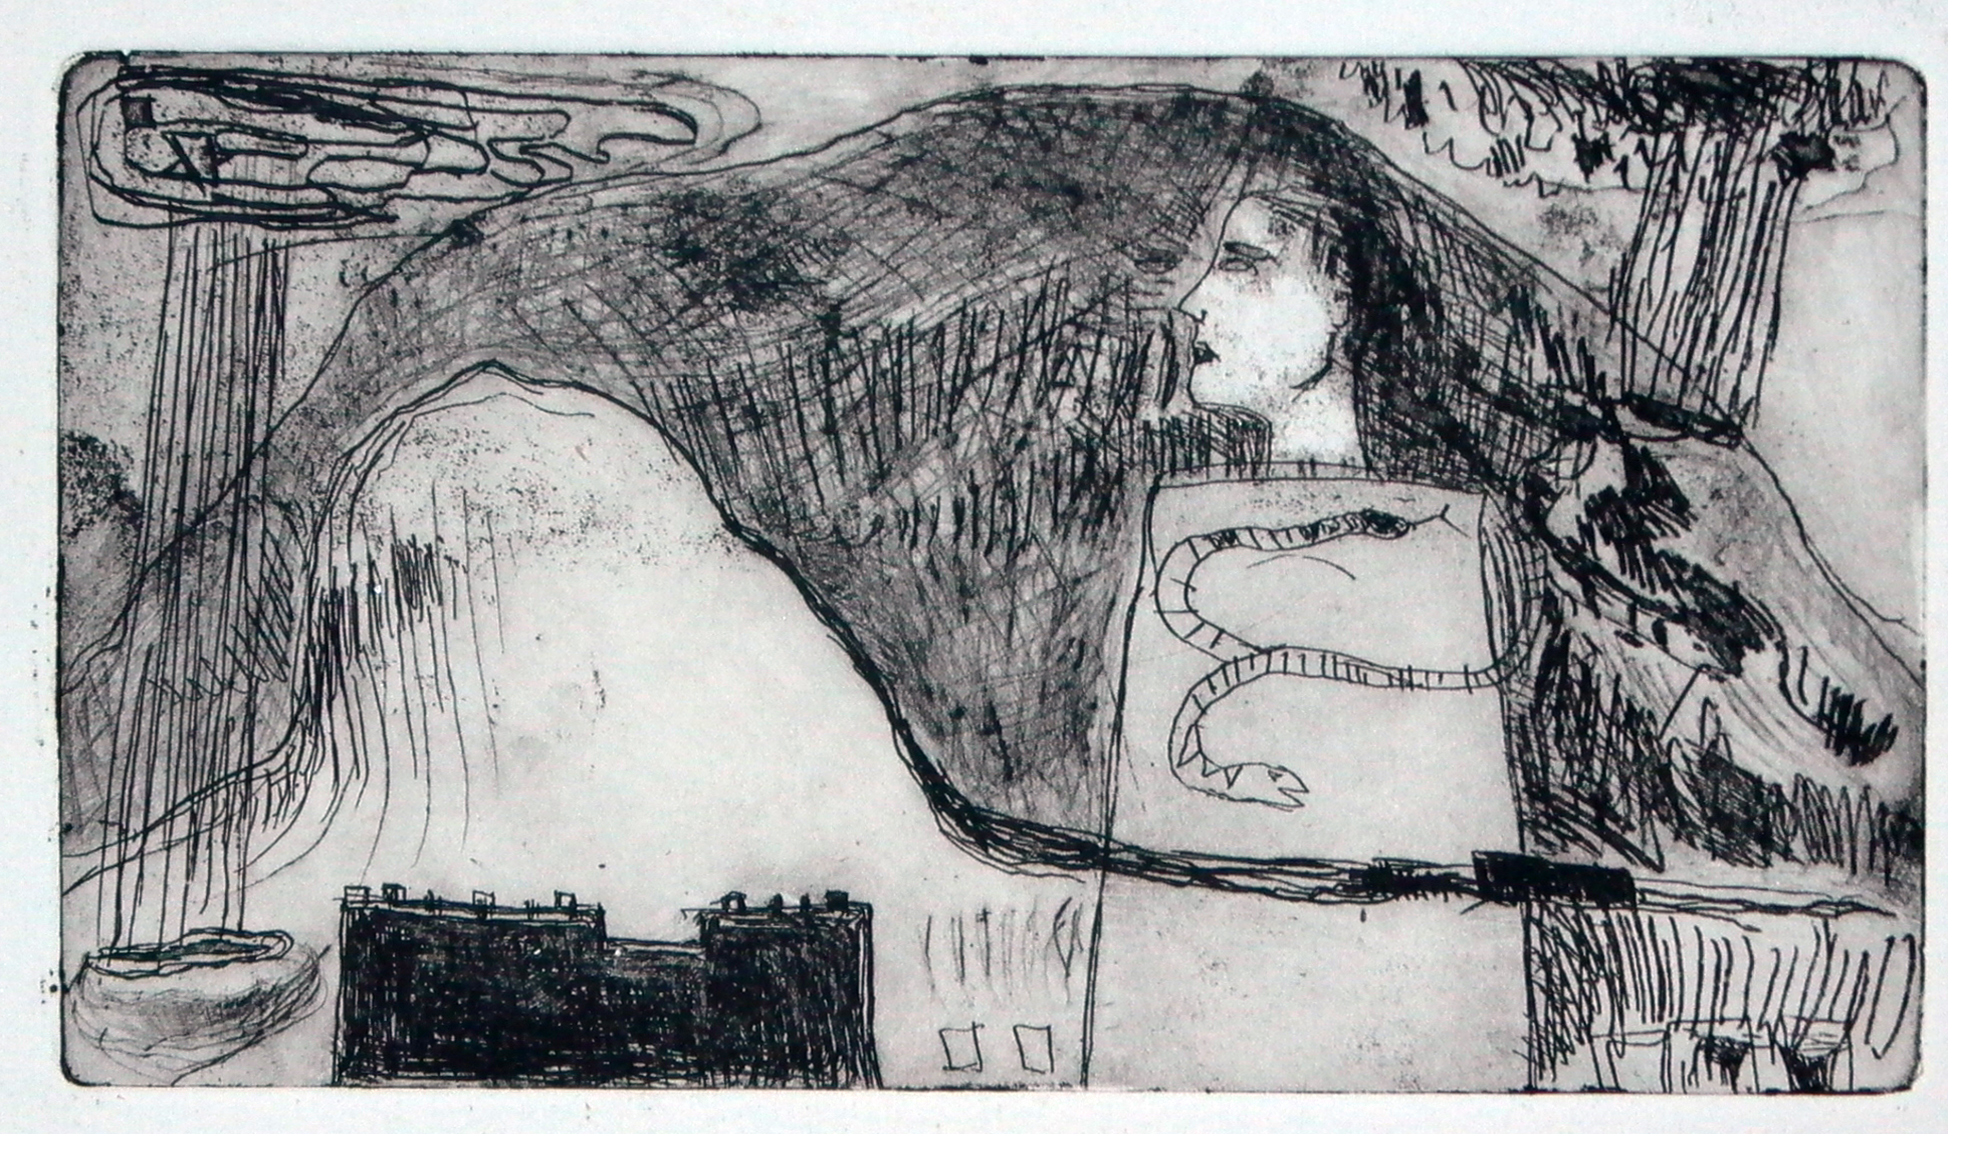 Snaky Tower - 1989 - Etching - 20 X 11 cm